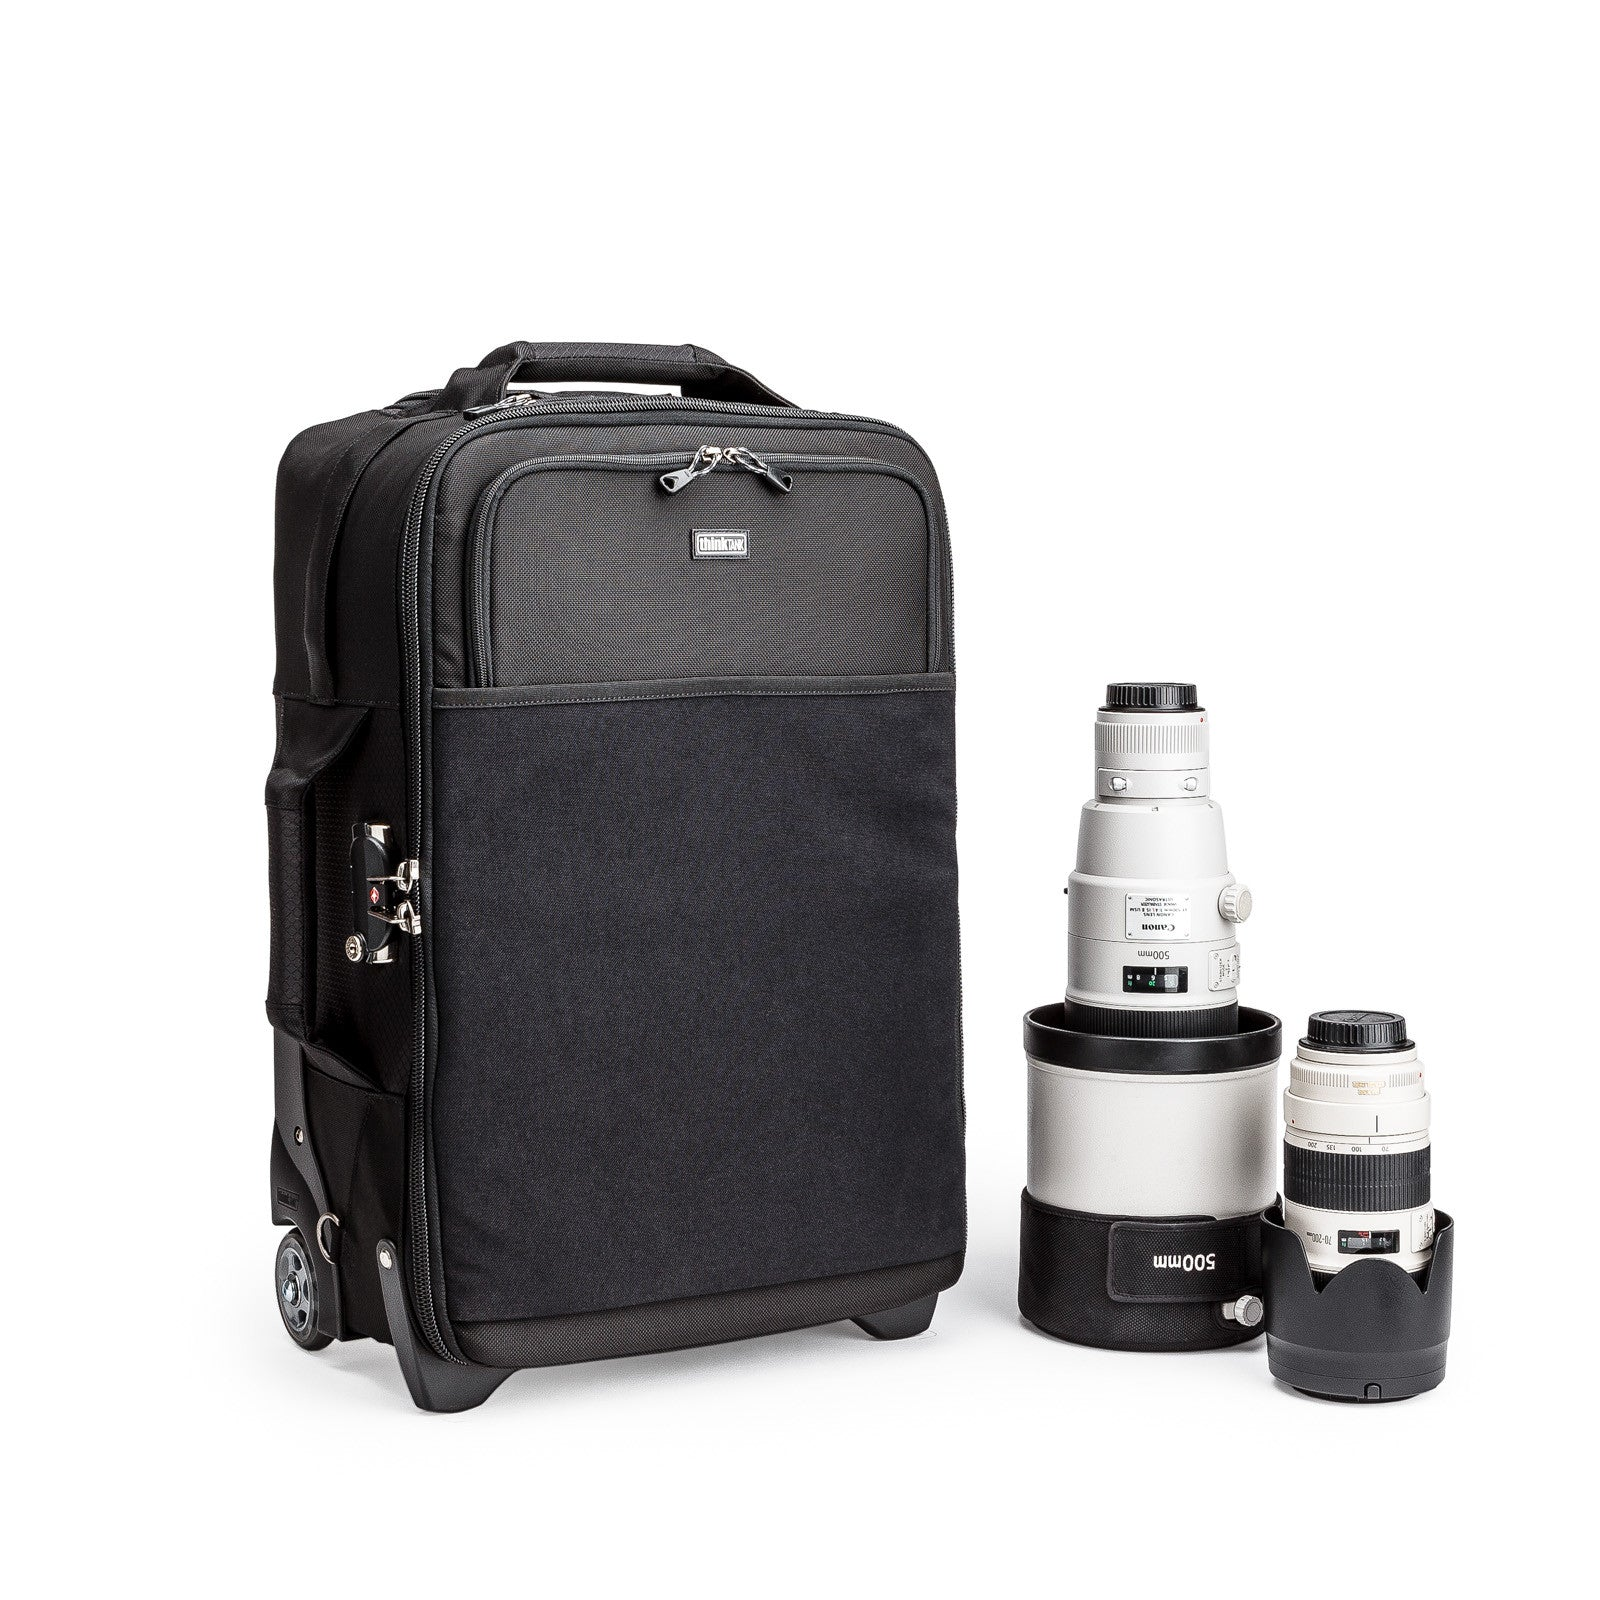 Airport Security Rolling Camera Bags For Airlines Think